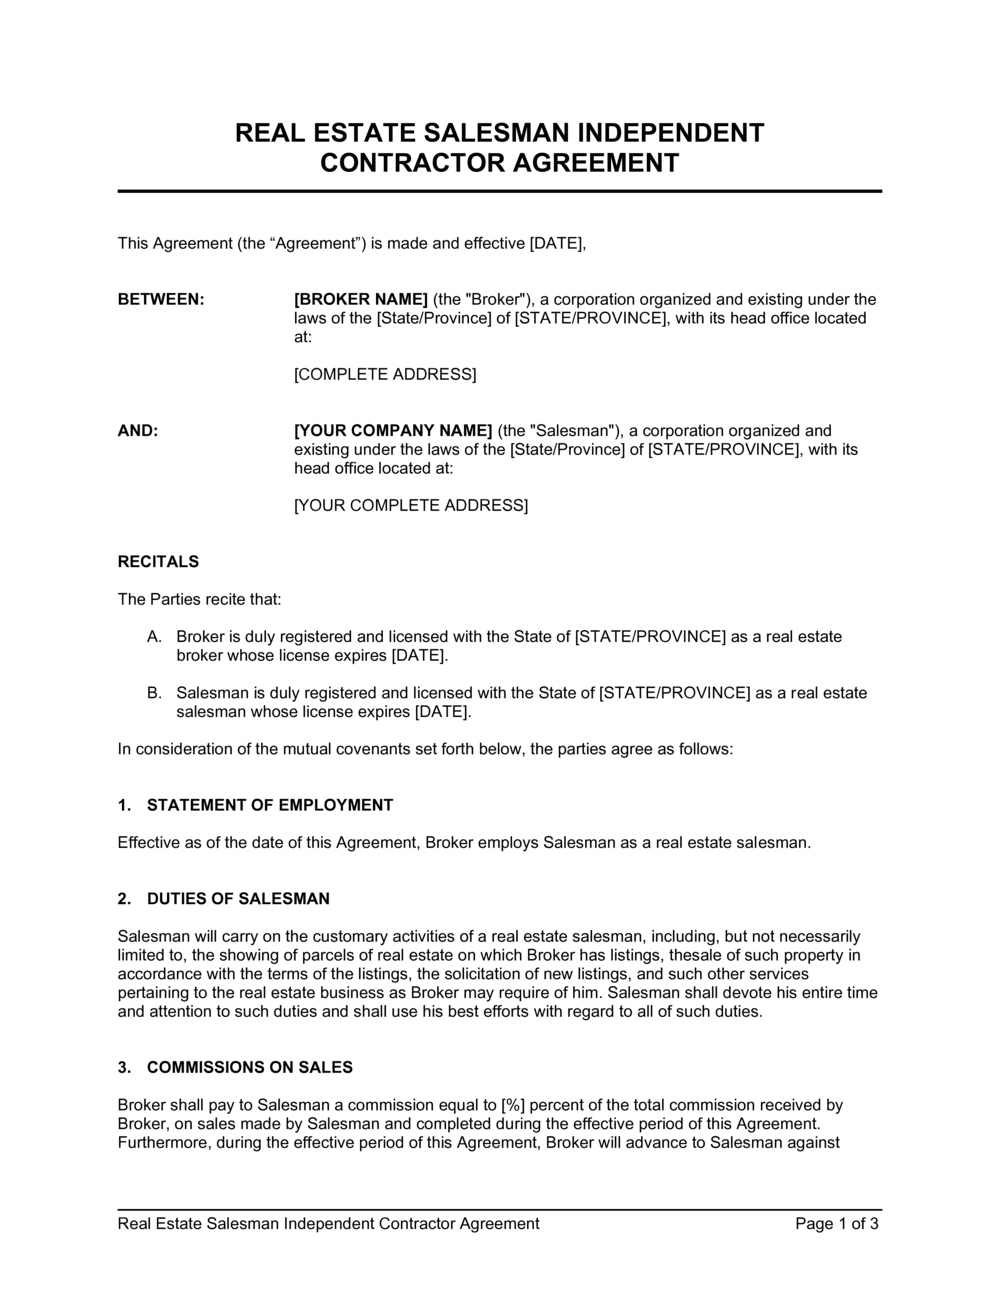 Business-in-a-Box's Real Estate Salesman Independent Contractor Agreement Template